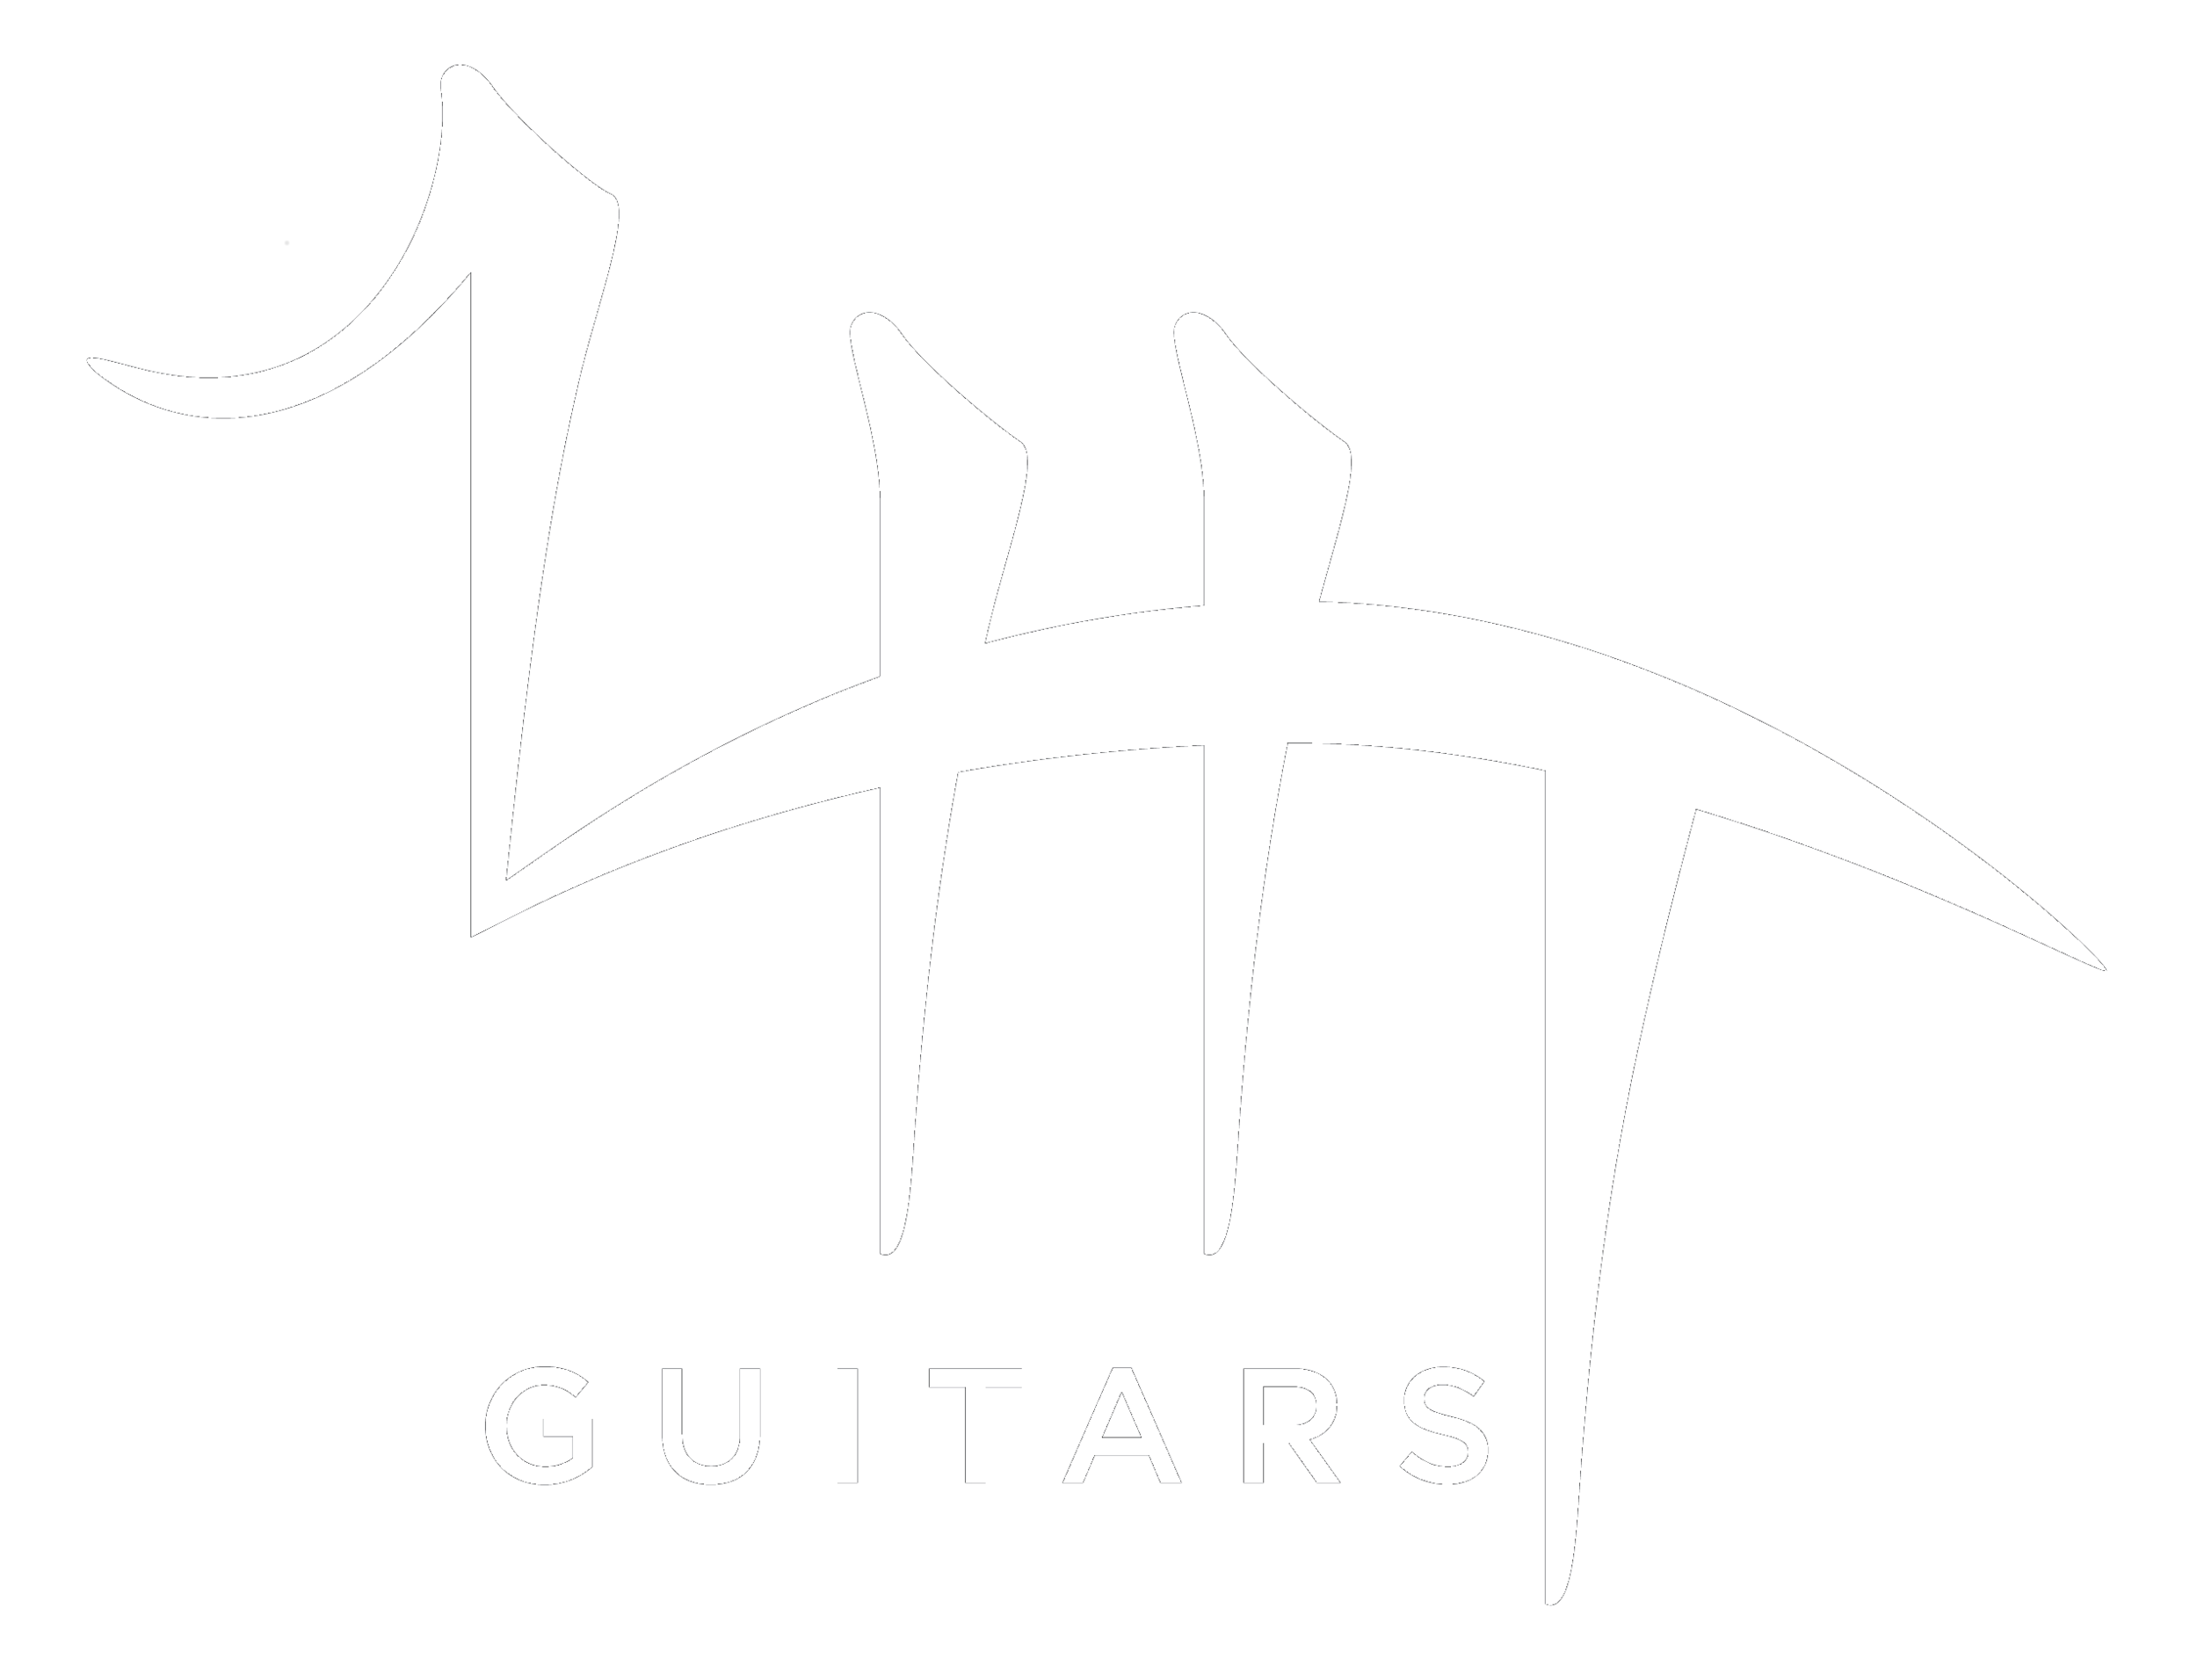 LHT Guitars